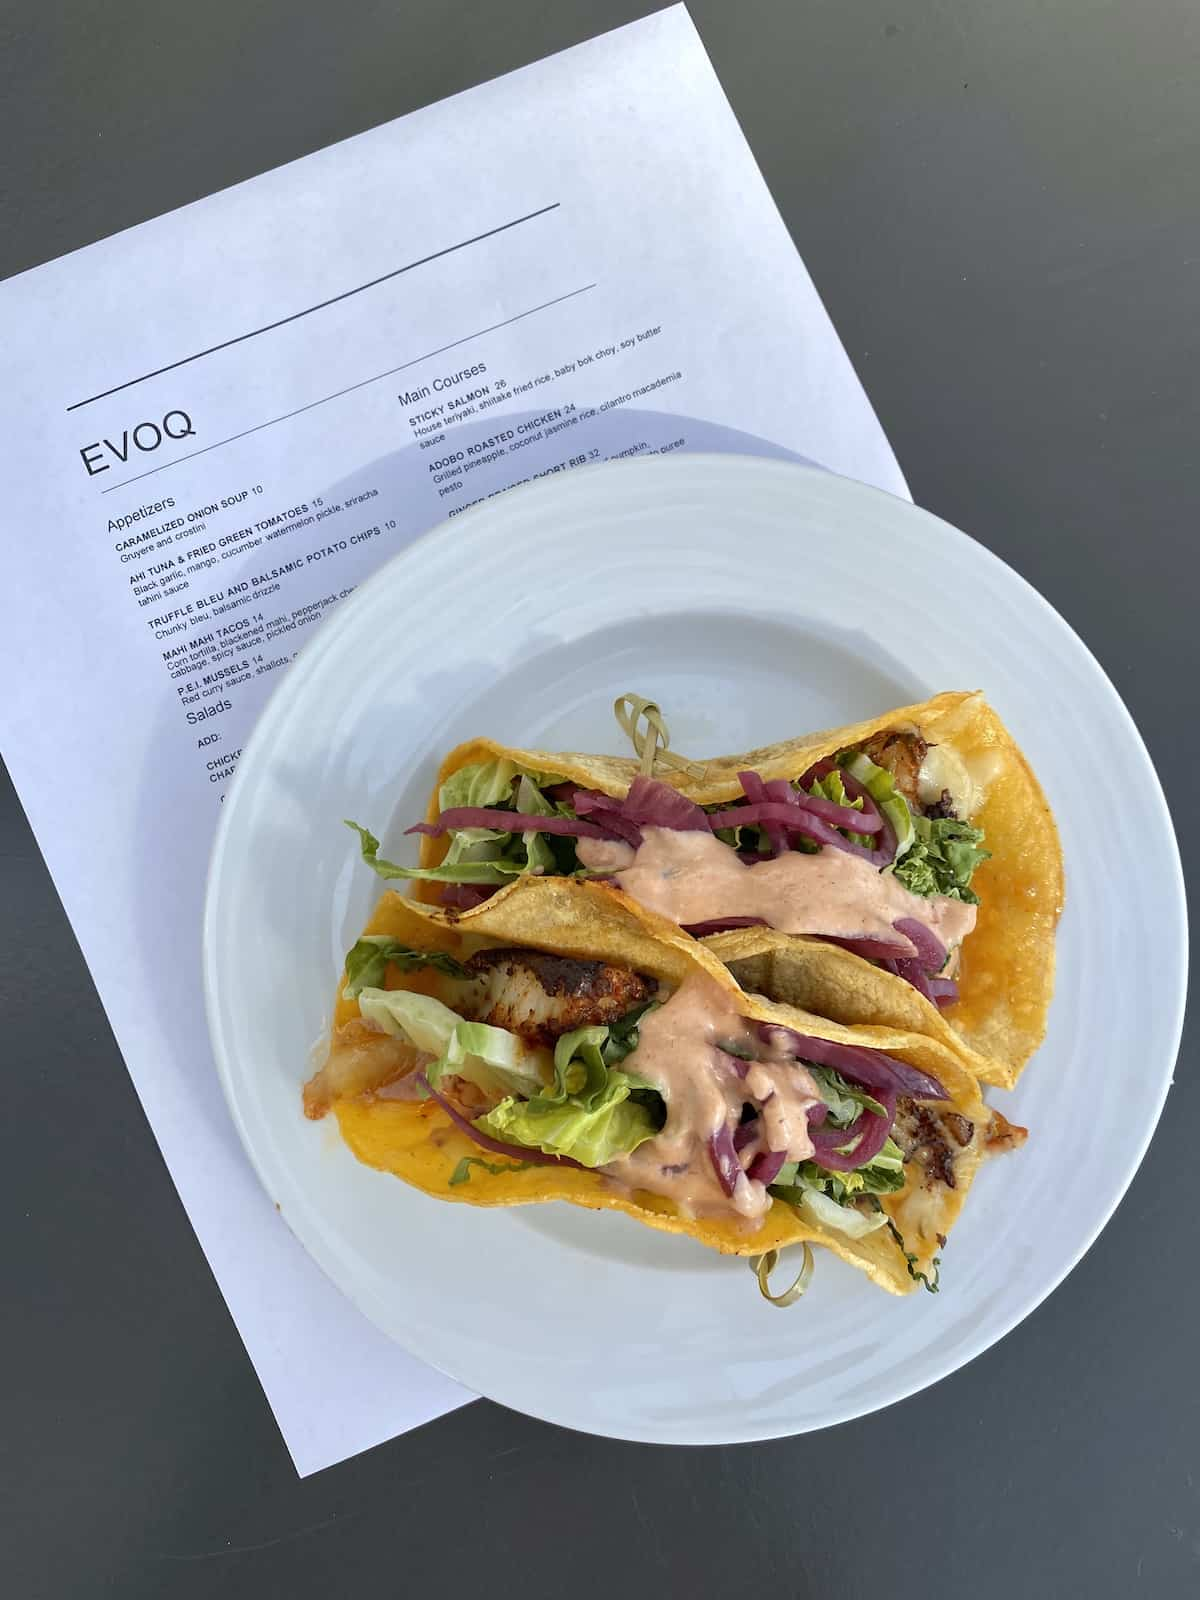 Fish tacos with spicy sauce at Evoq restaurant in Sarasota